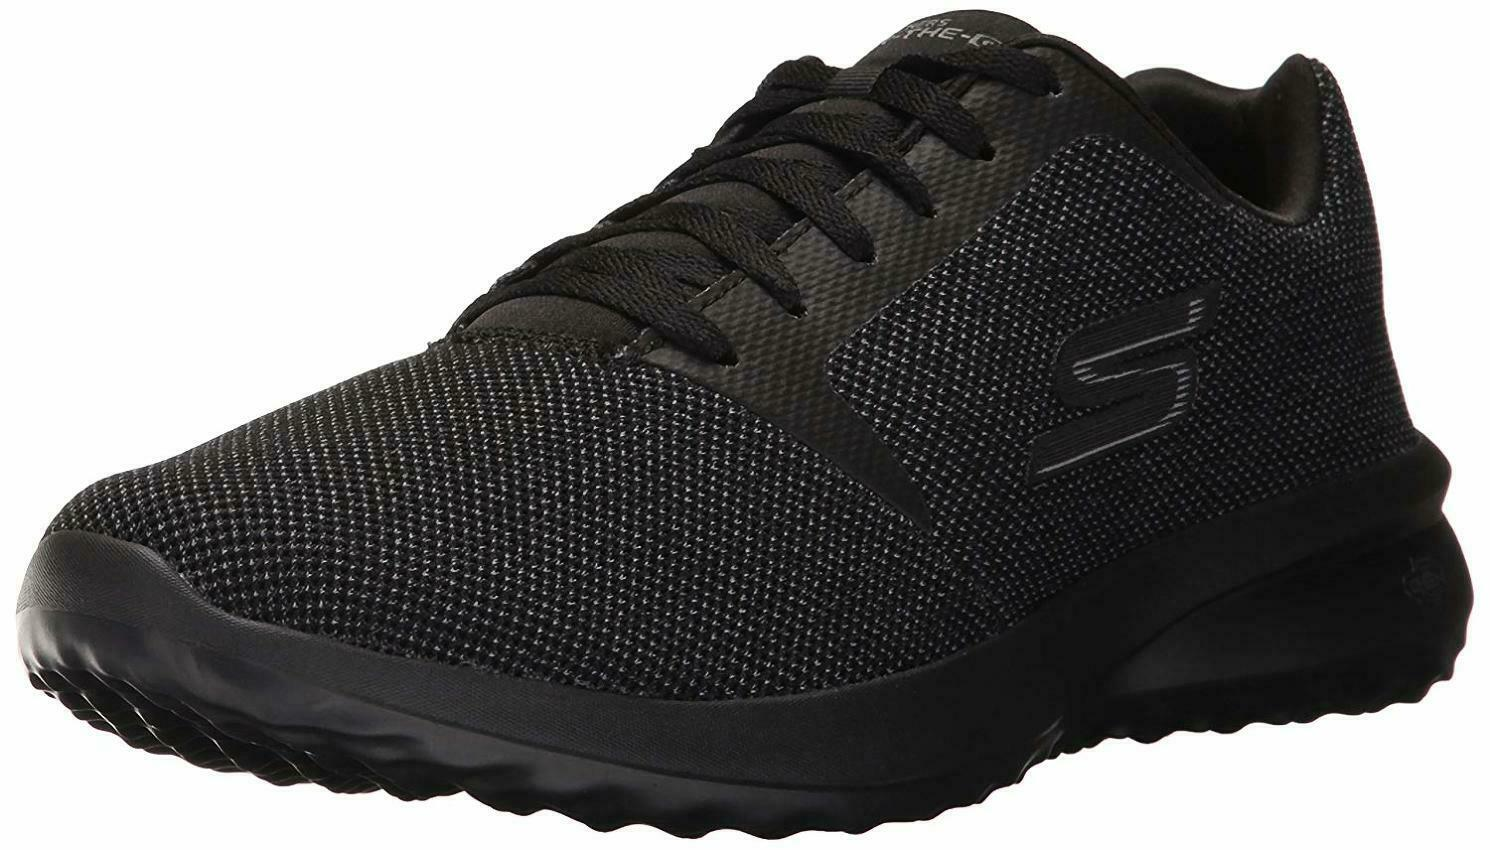 Skechers Men's On-The-go City 3-55300 Walking shoes - Choose SZ color